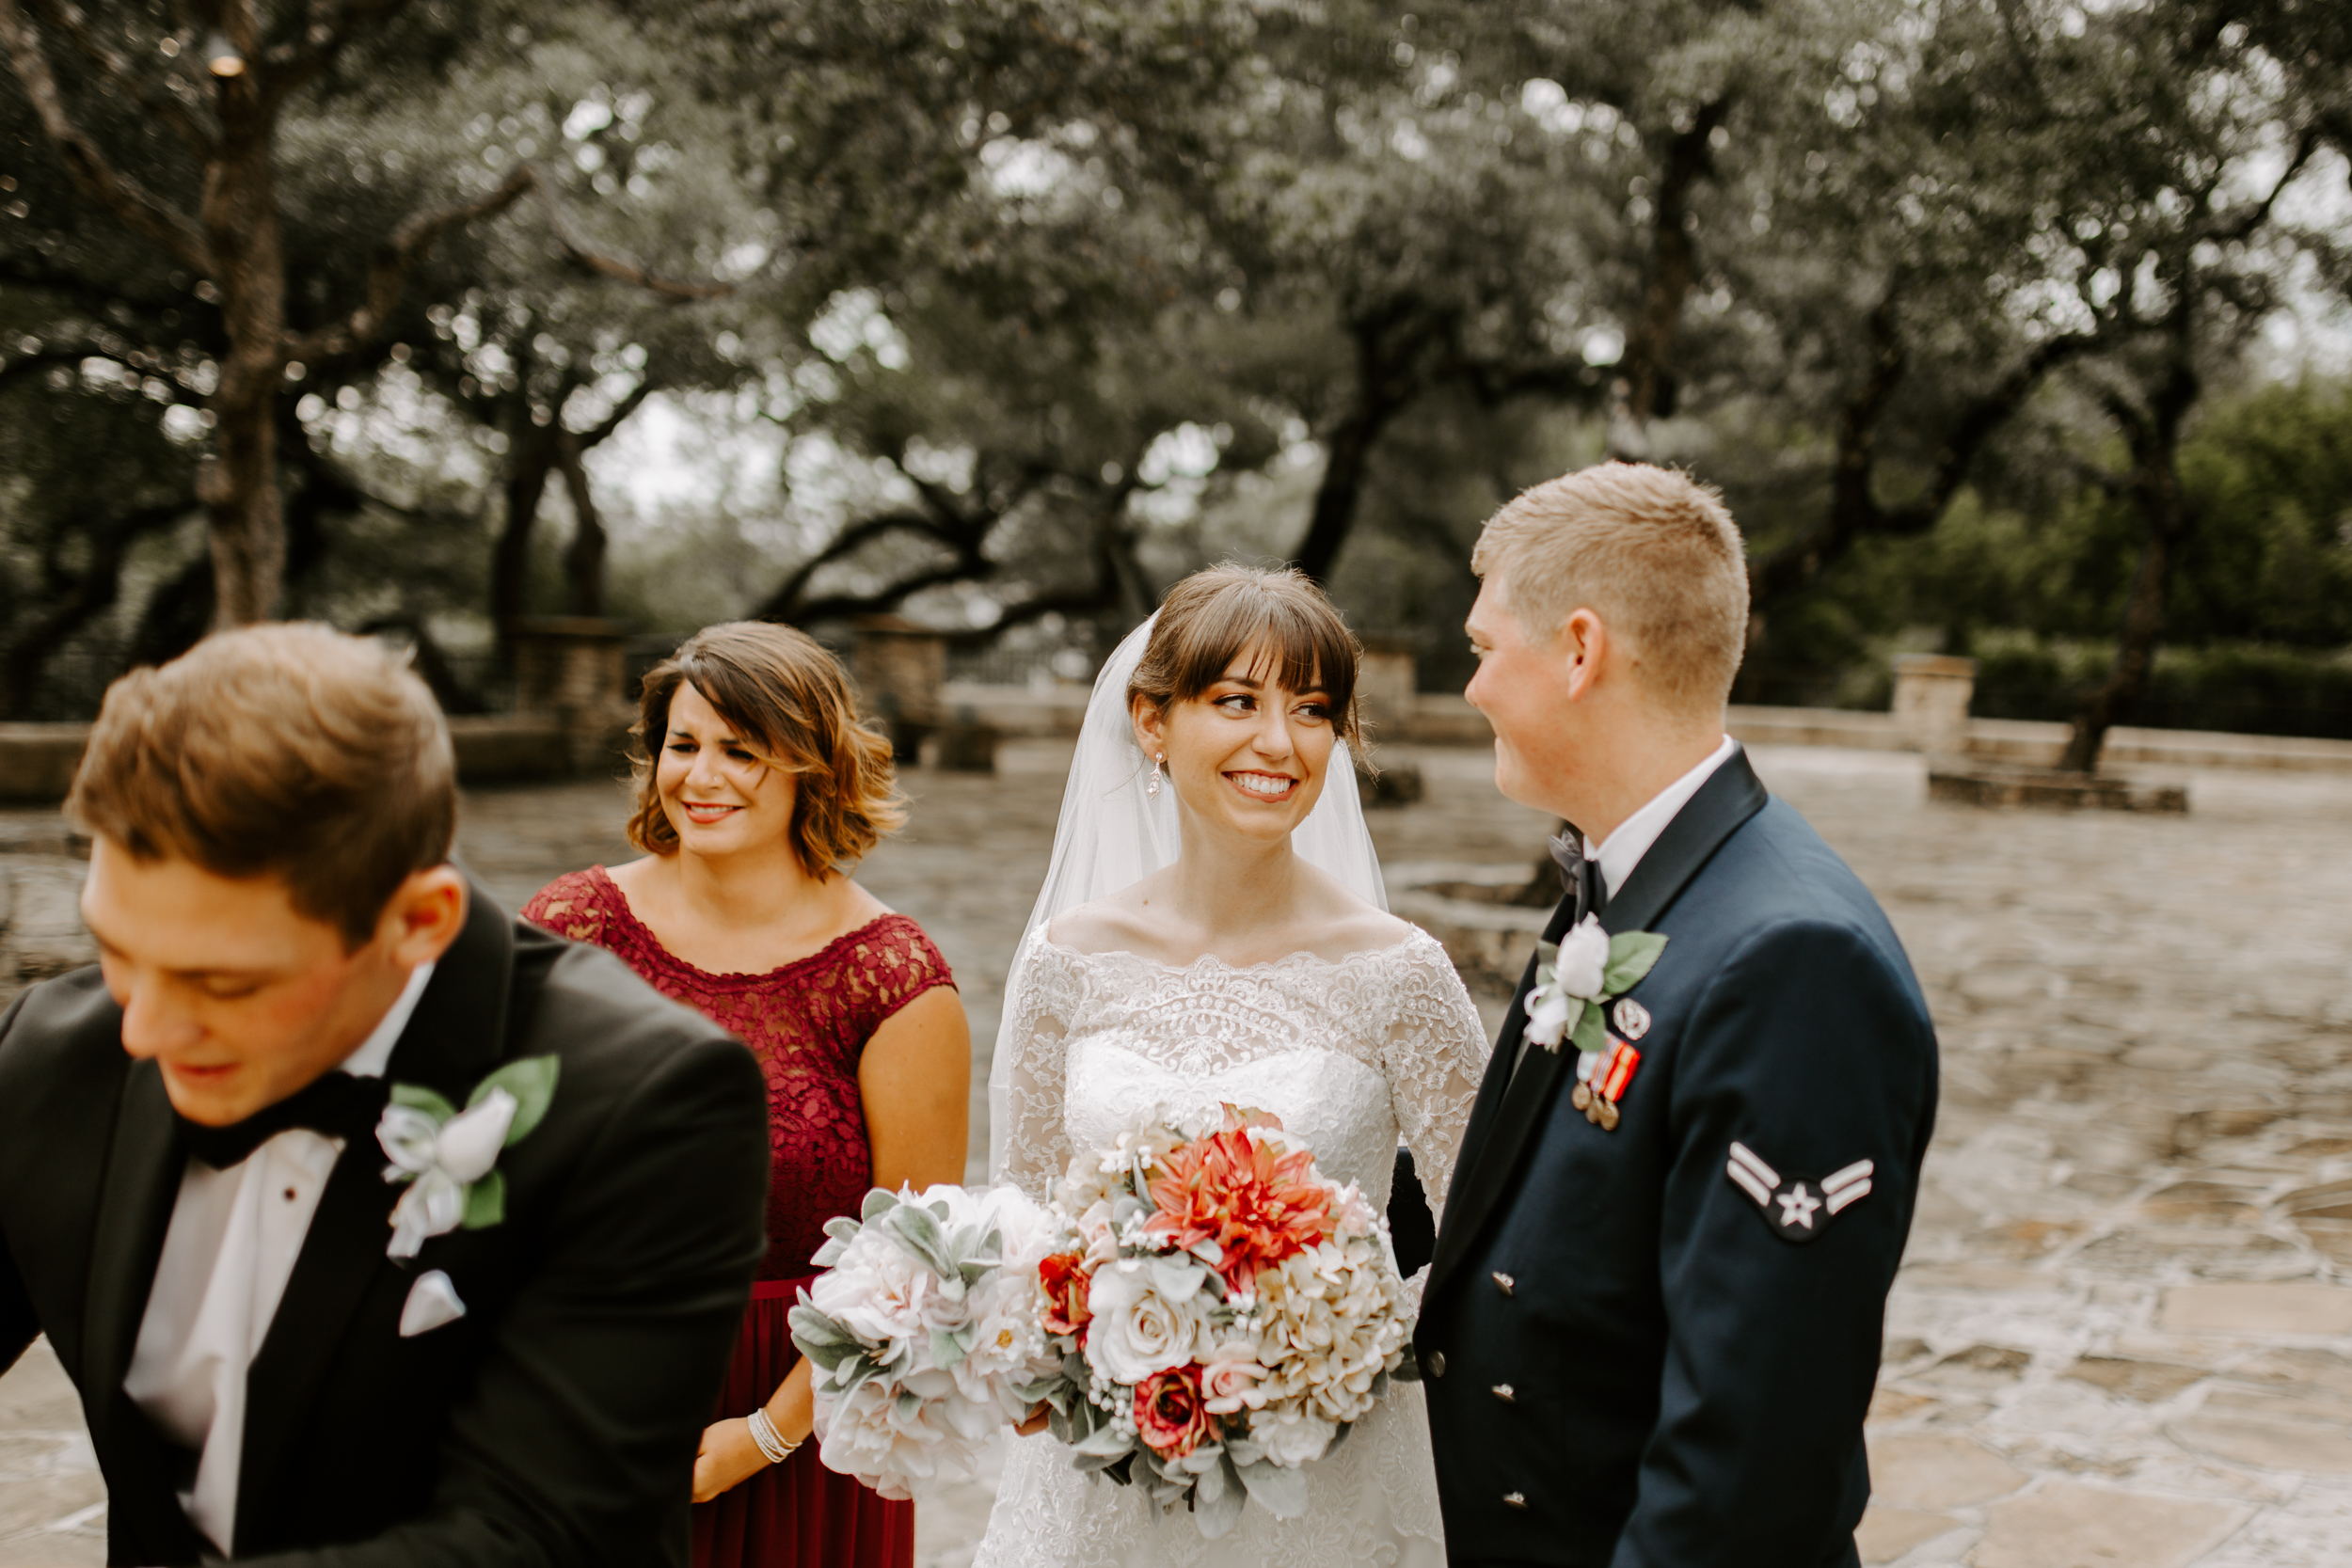 Megan_Caleb_Wedding_2018-328.jpg